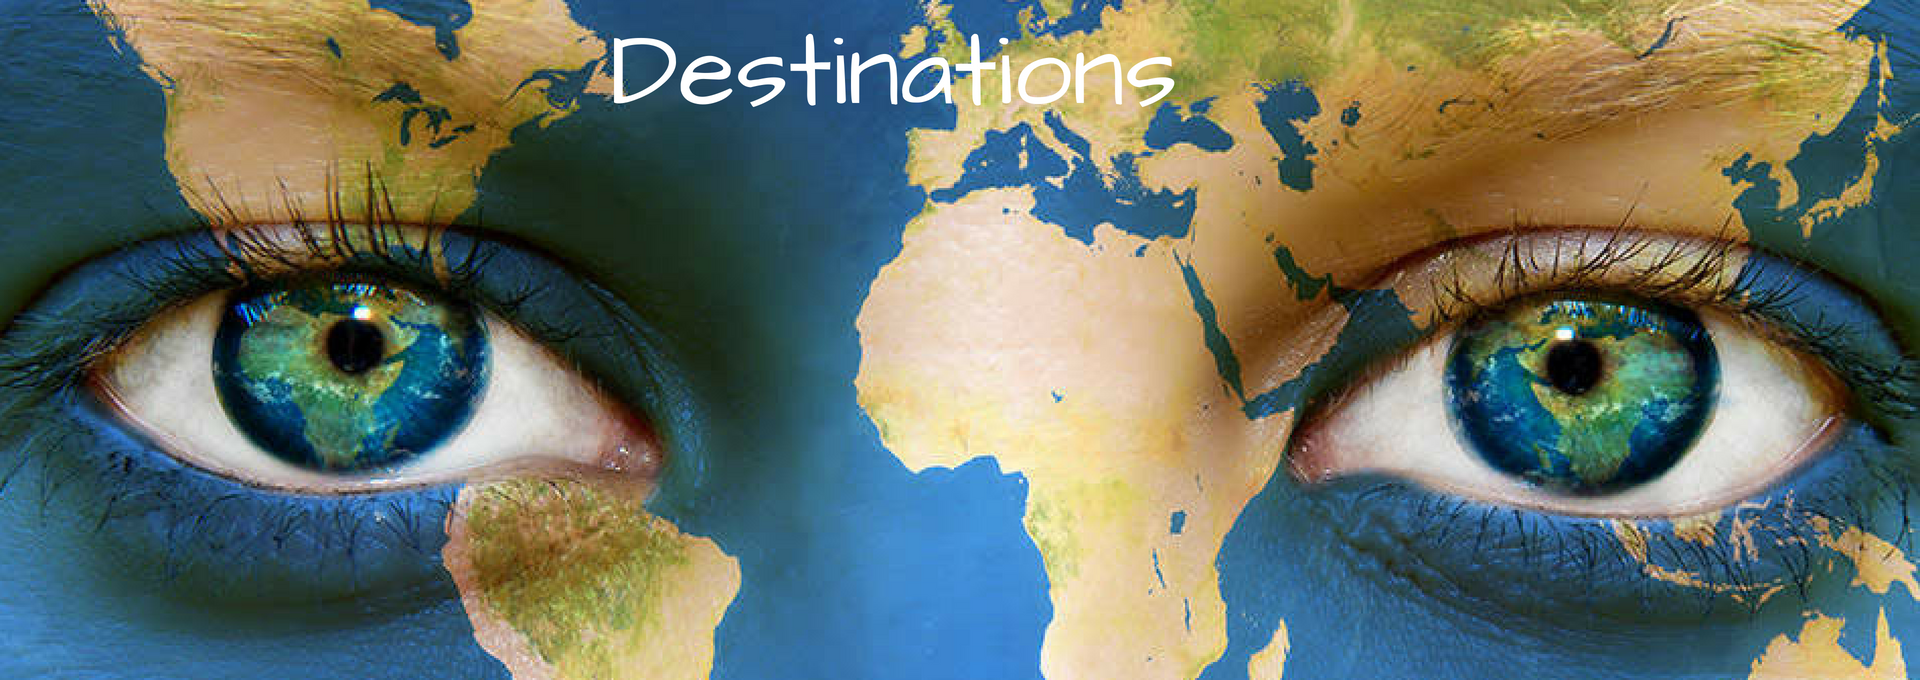 DESTINATIONS category